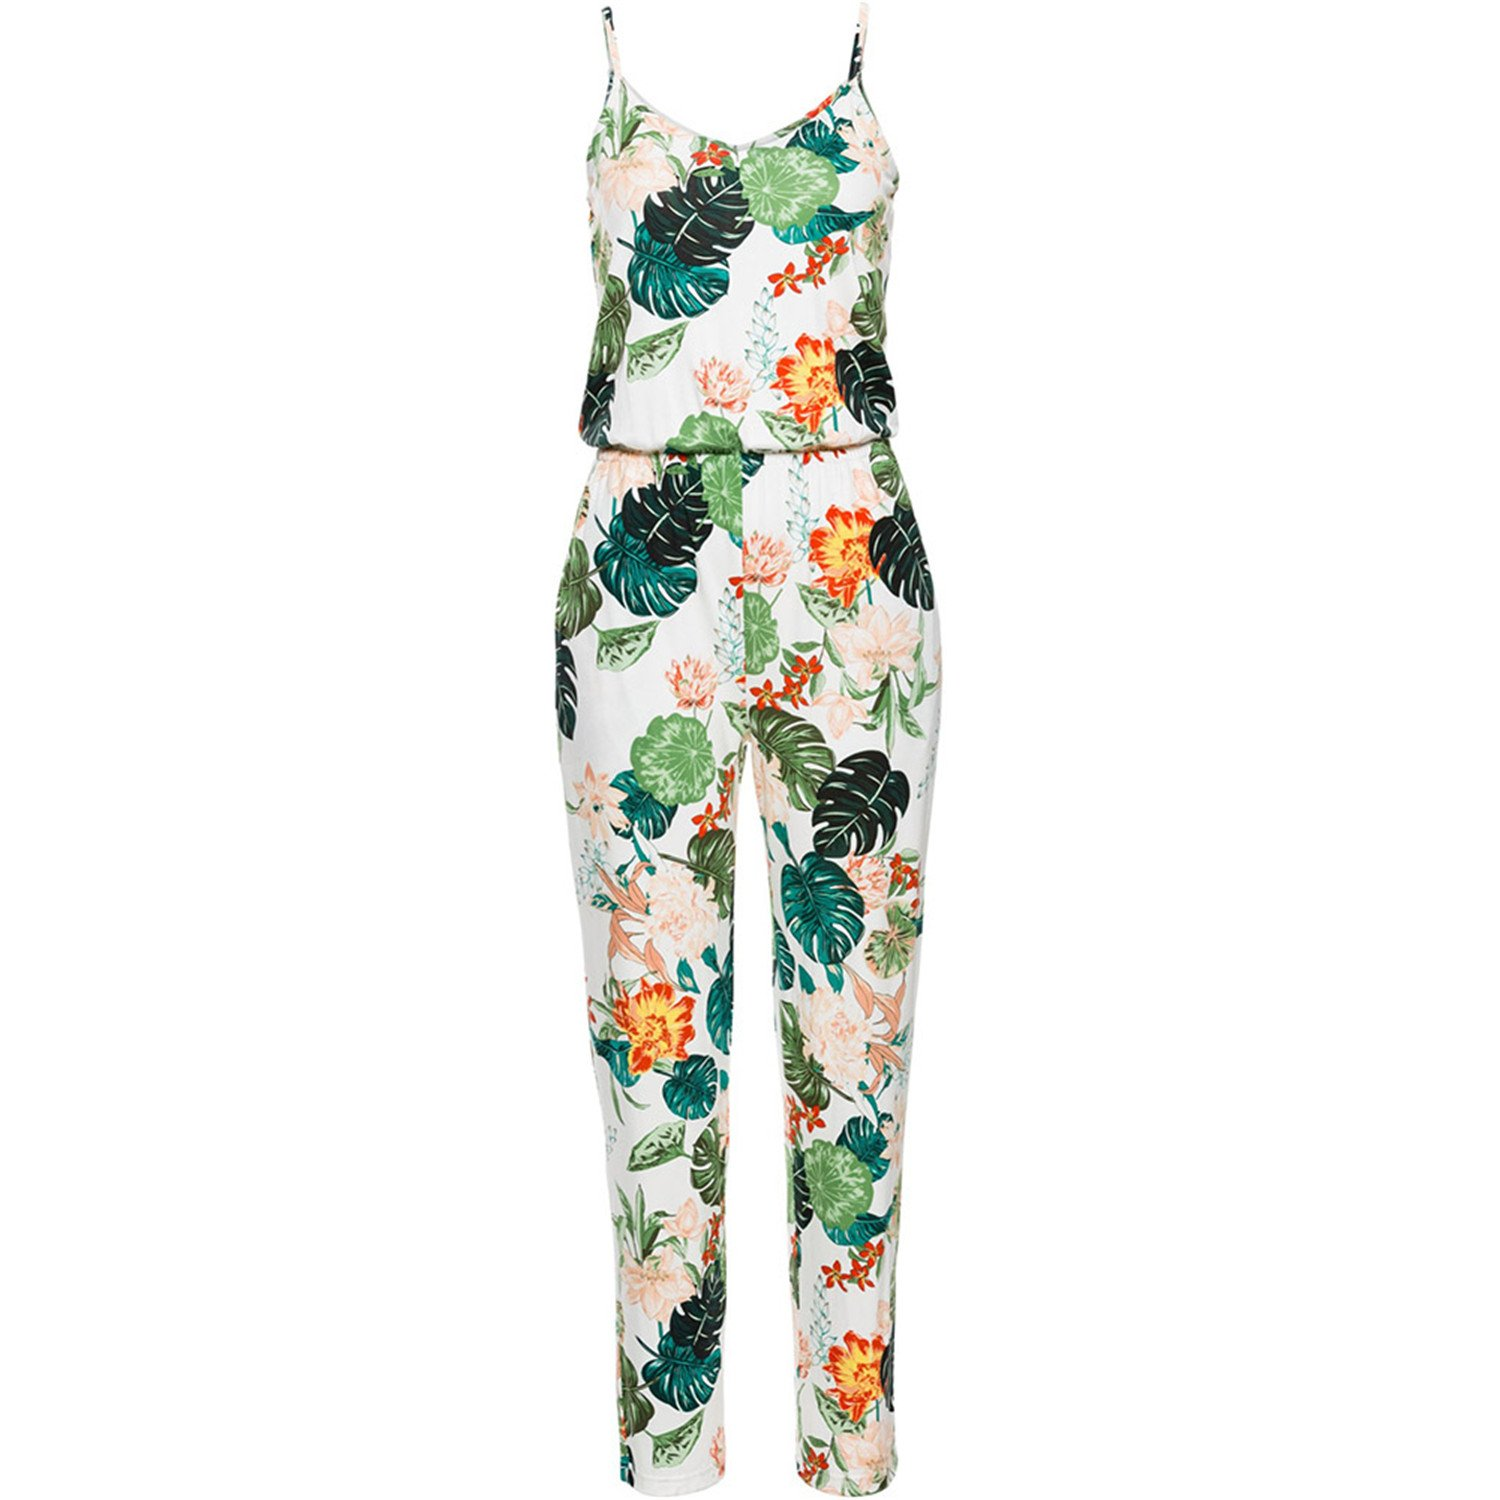 nboba jumpsuits Female Beach Party Full Length Long Women's Rompers W5131WT L